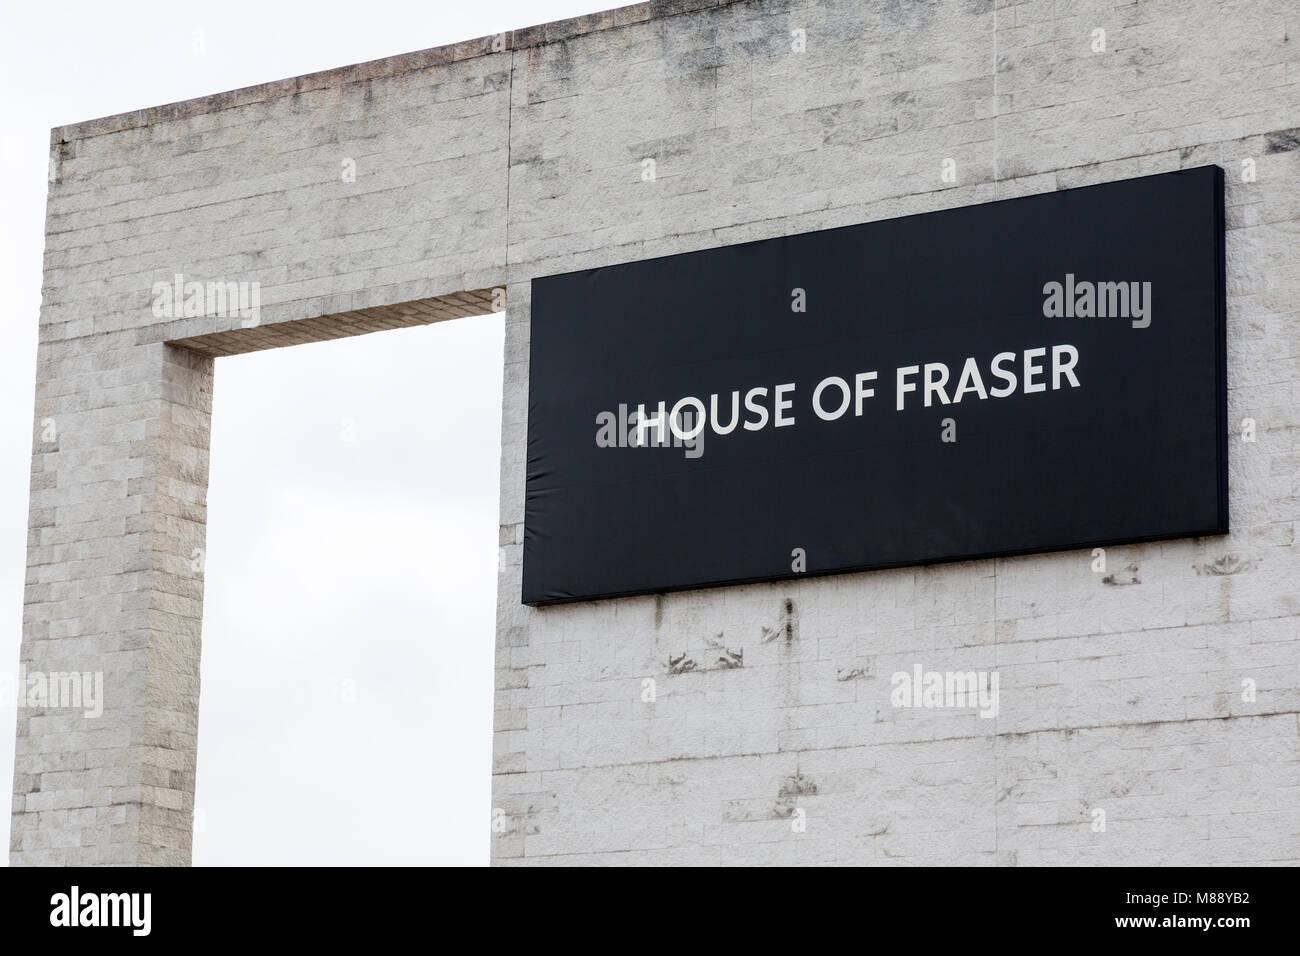 The House Of Fraser Department Store in  Telford, Shropshire, England. - Stock Image